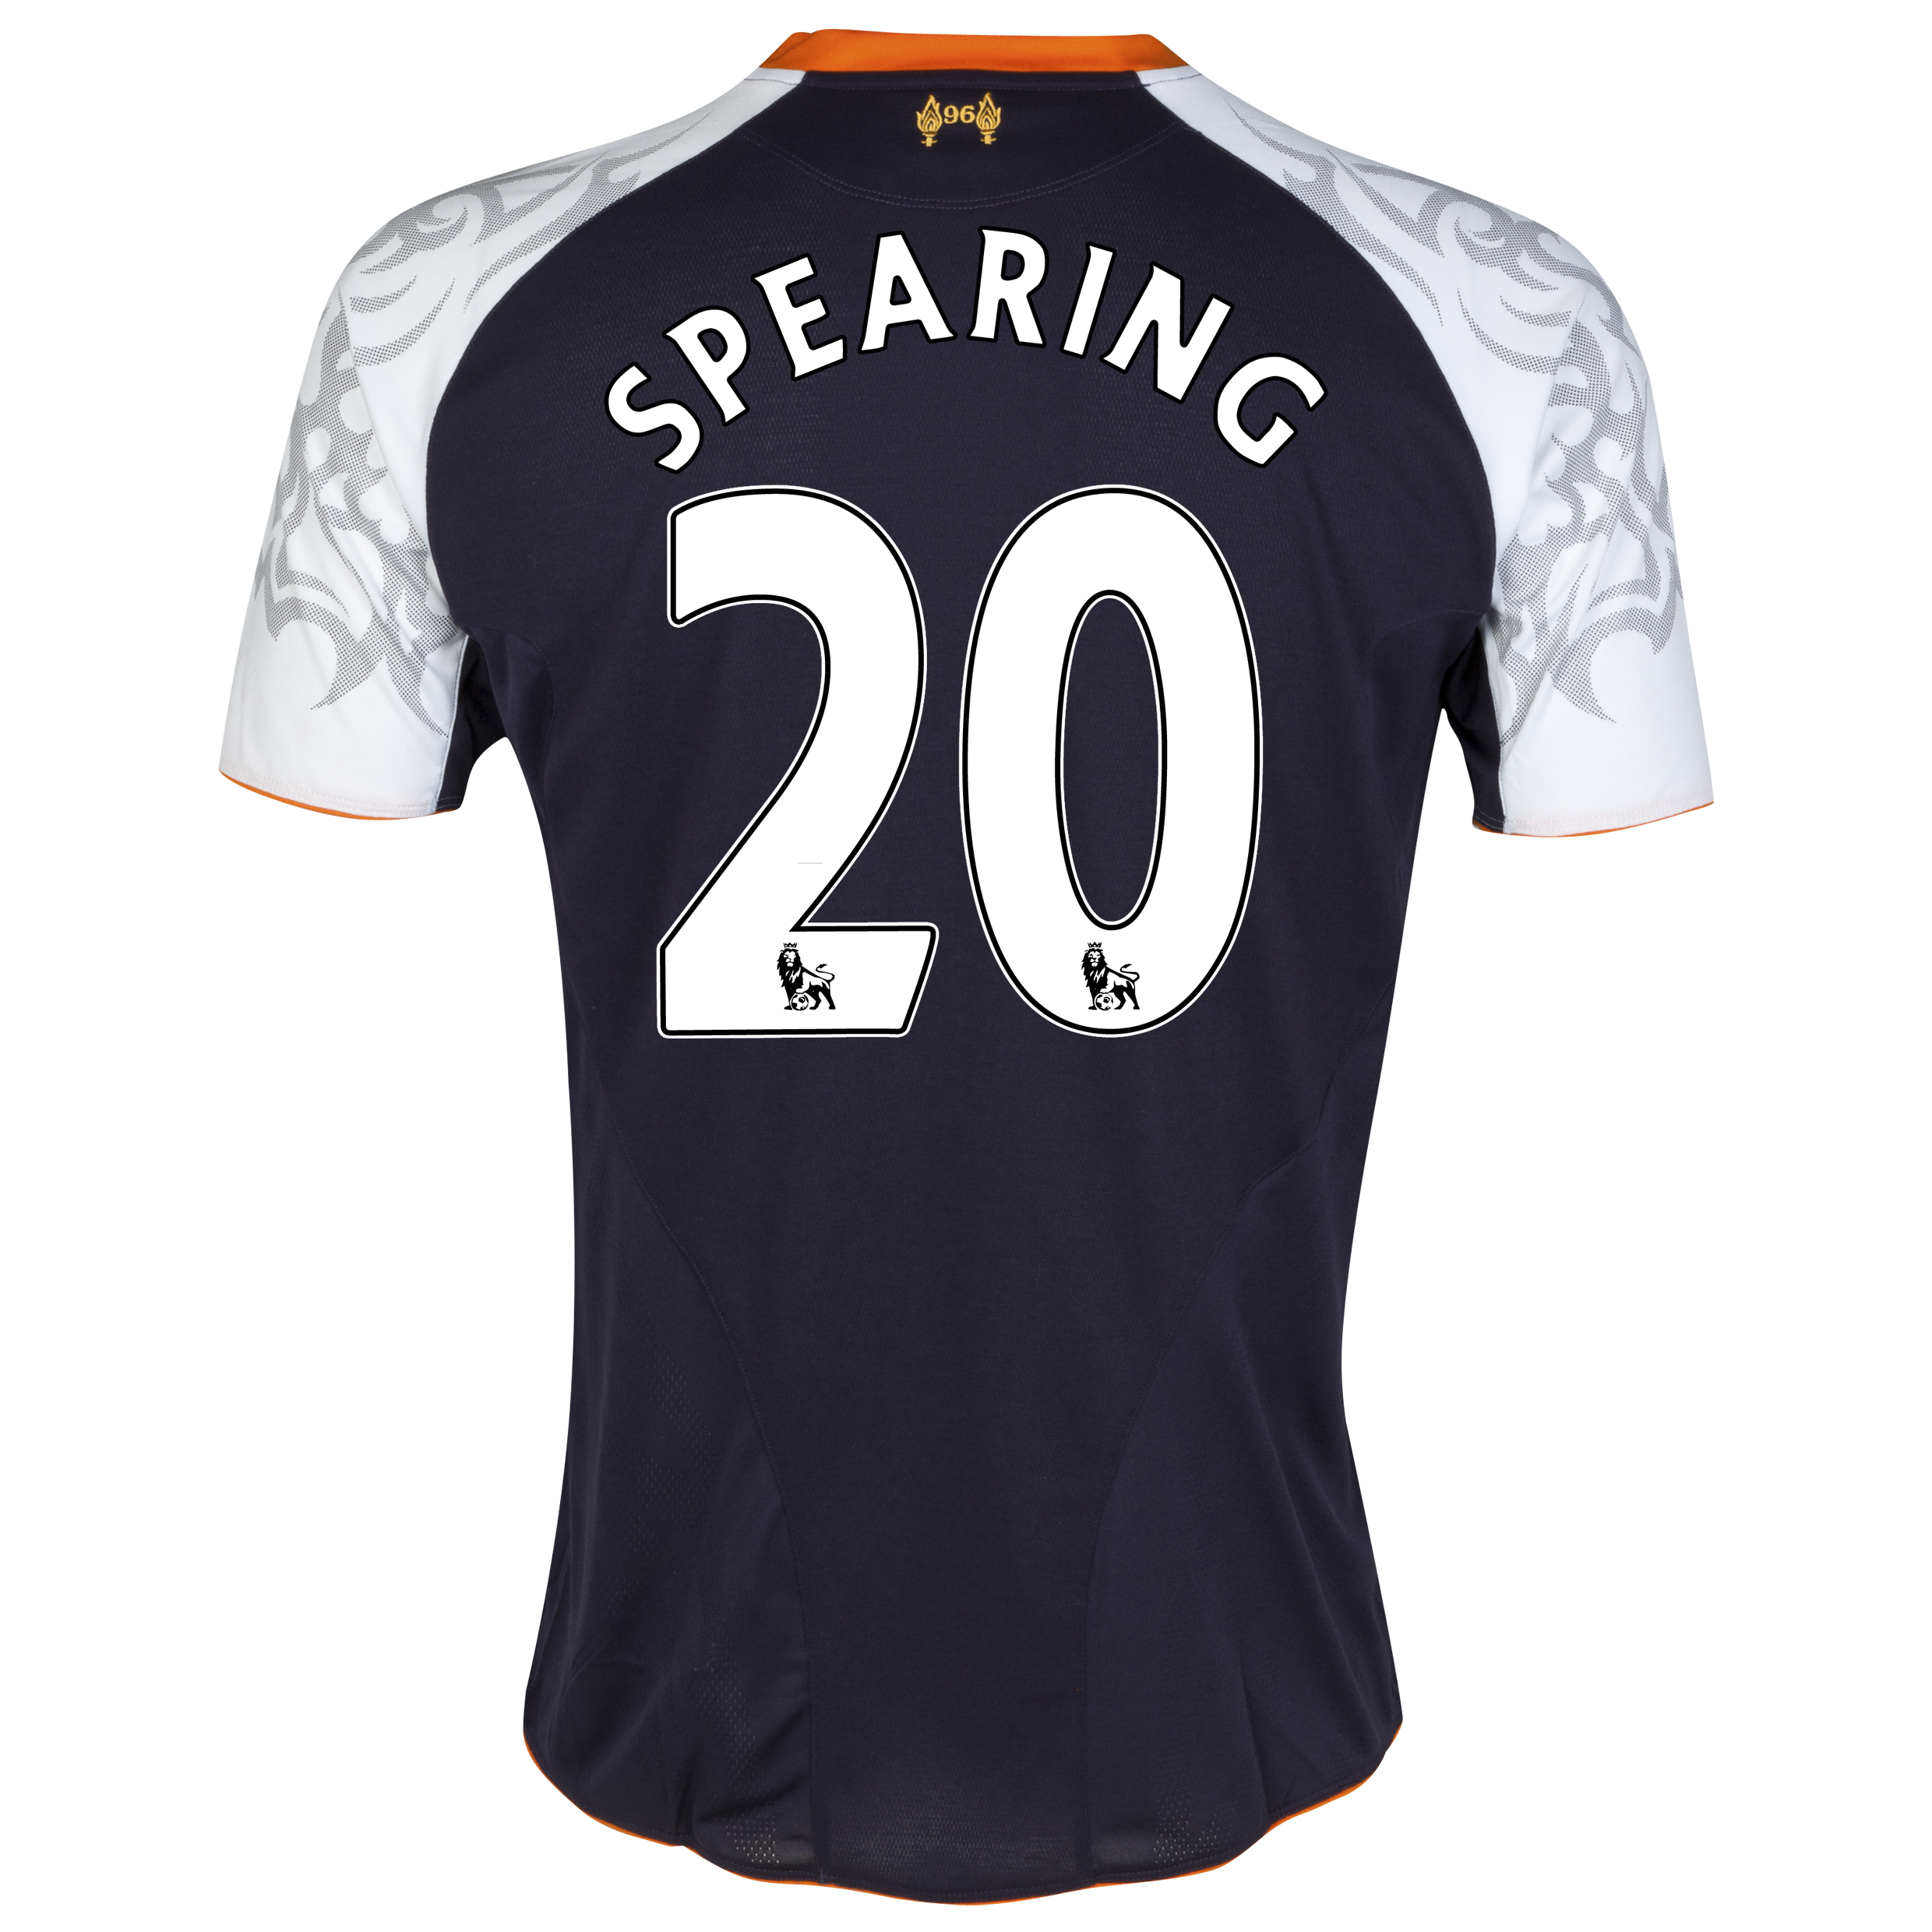 Liverpool Third Shirt 2012/13 - Youths with Spearing 20 printing